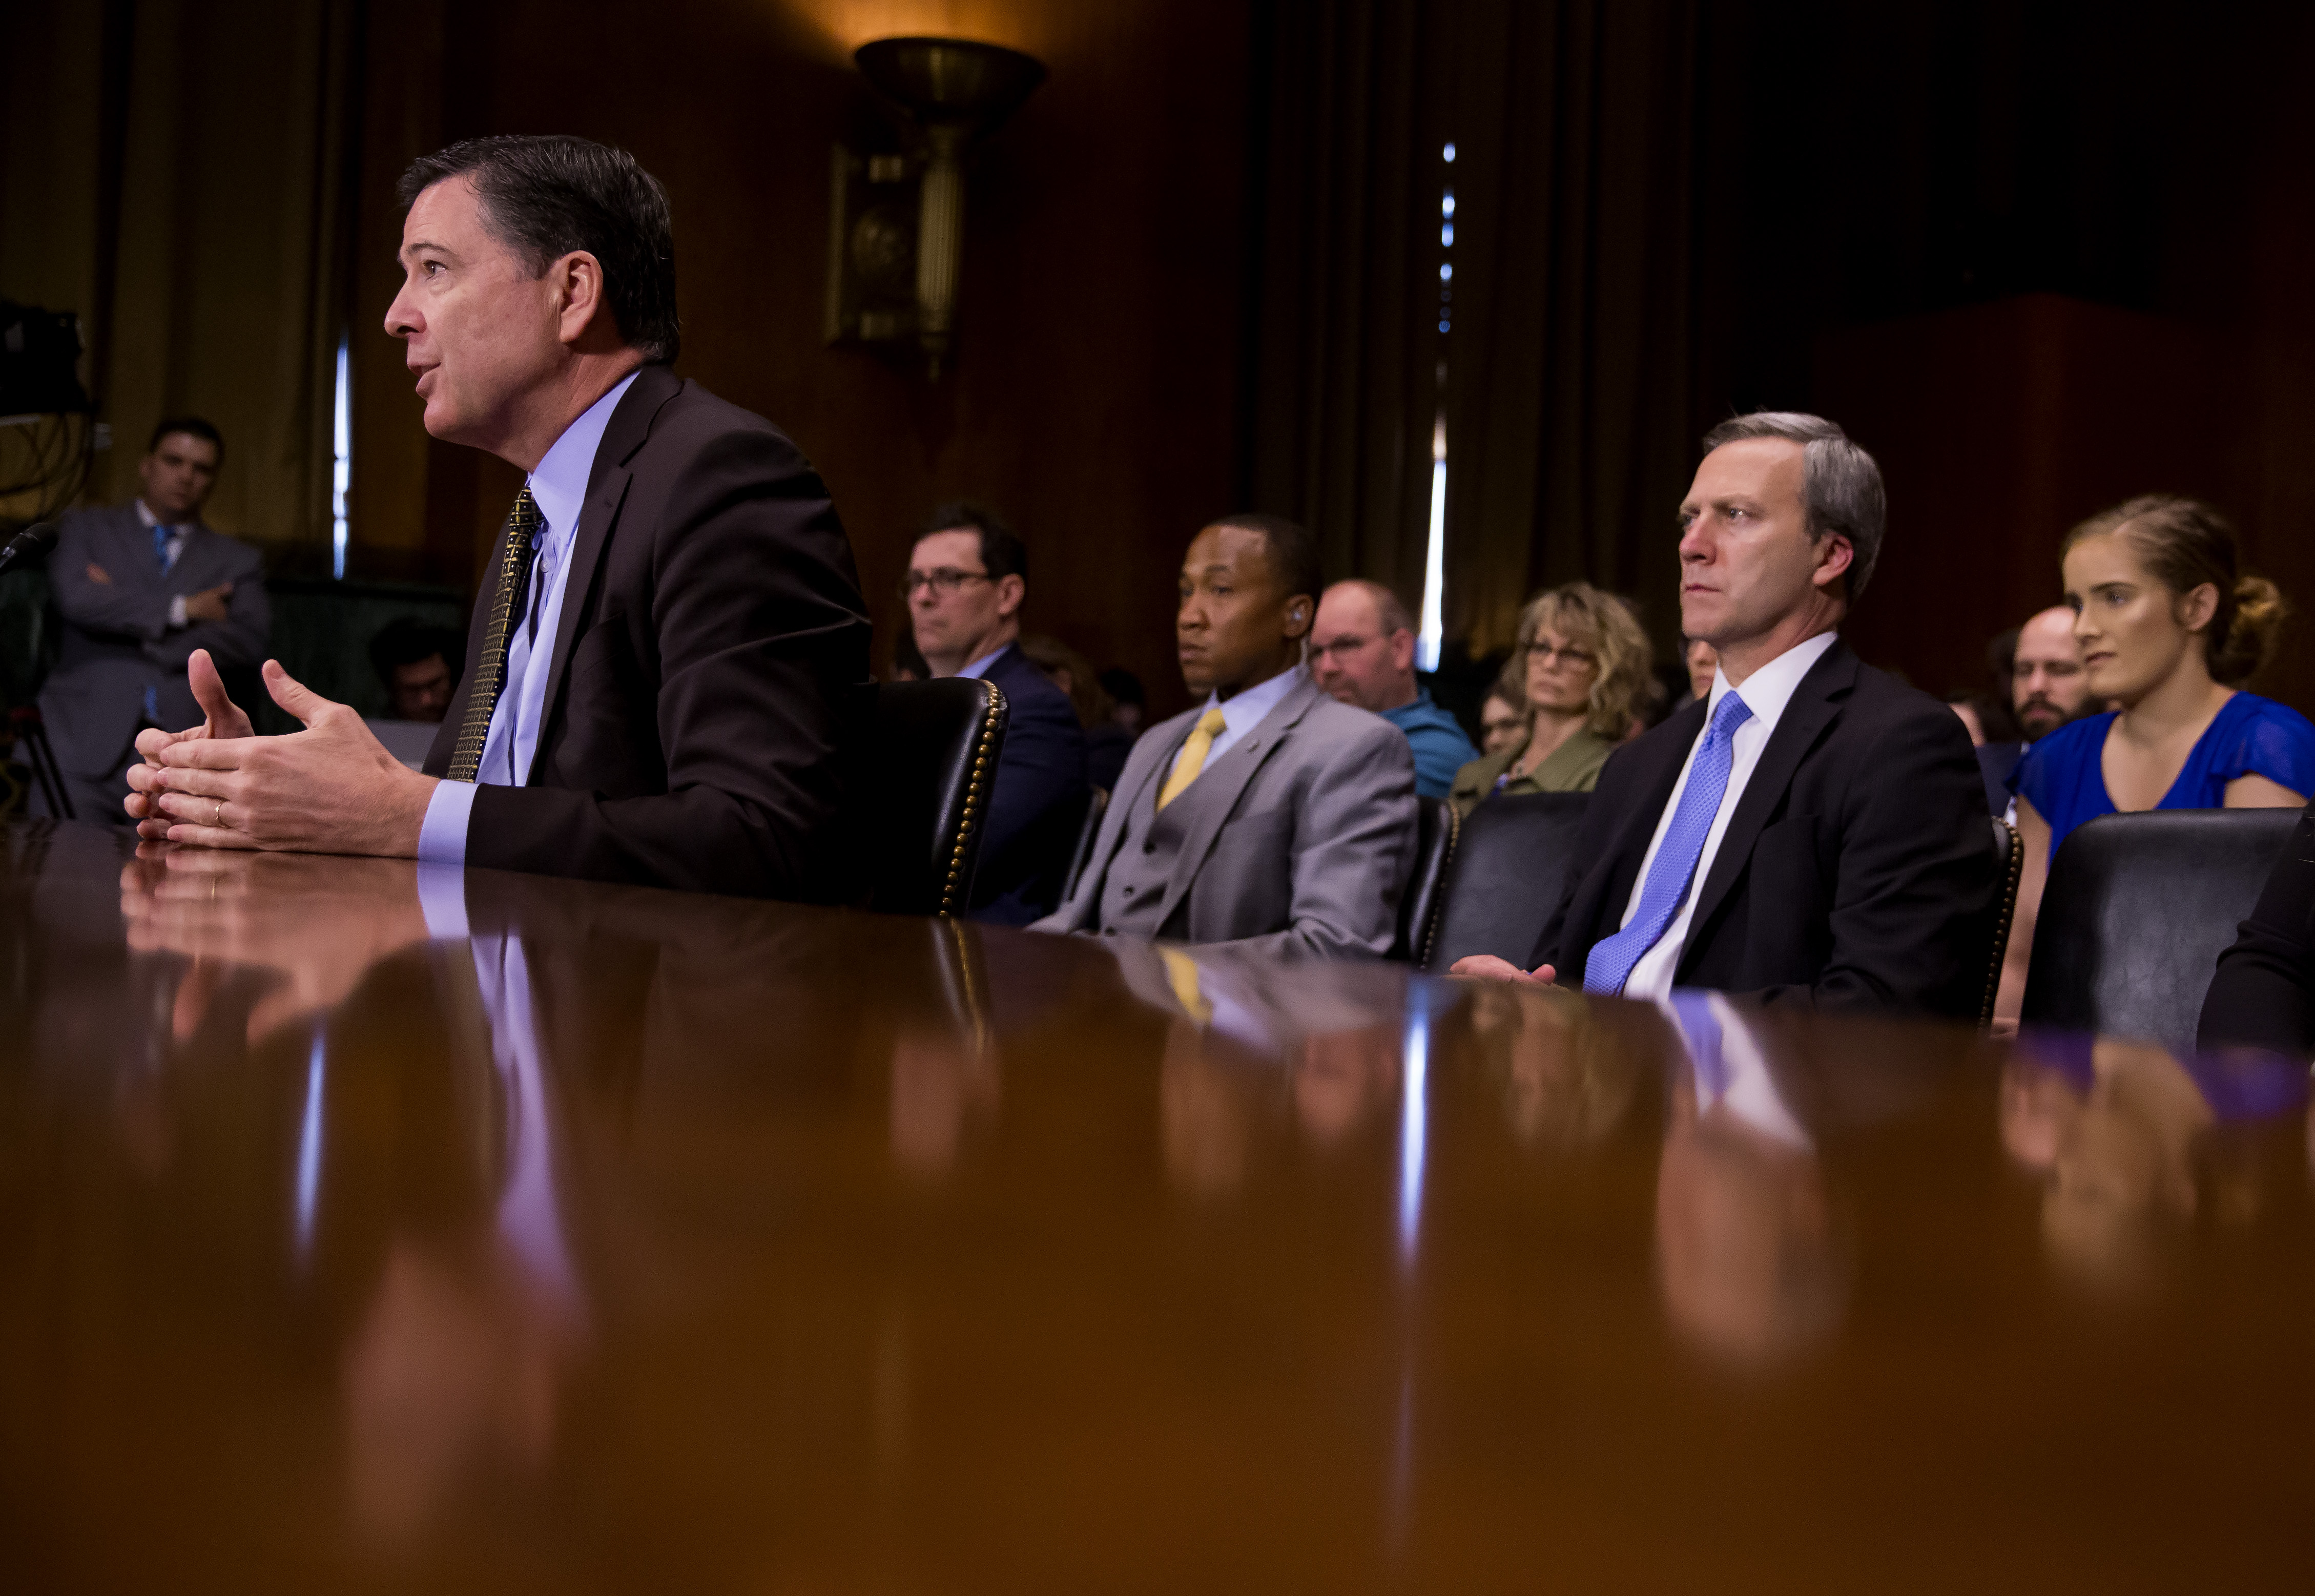 Director of the Federal Bureau of Investigation, James Comey testifies in front of the Senate Judiciary Committee during an oversight hearing on the FBI on Capitol Hill in Washington on May 3, 2017. (Eric Thayer/Getty Images)